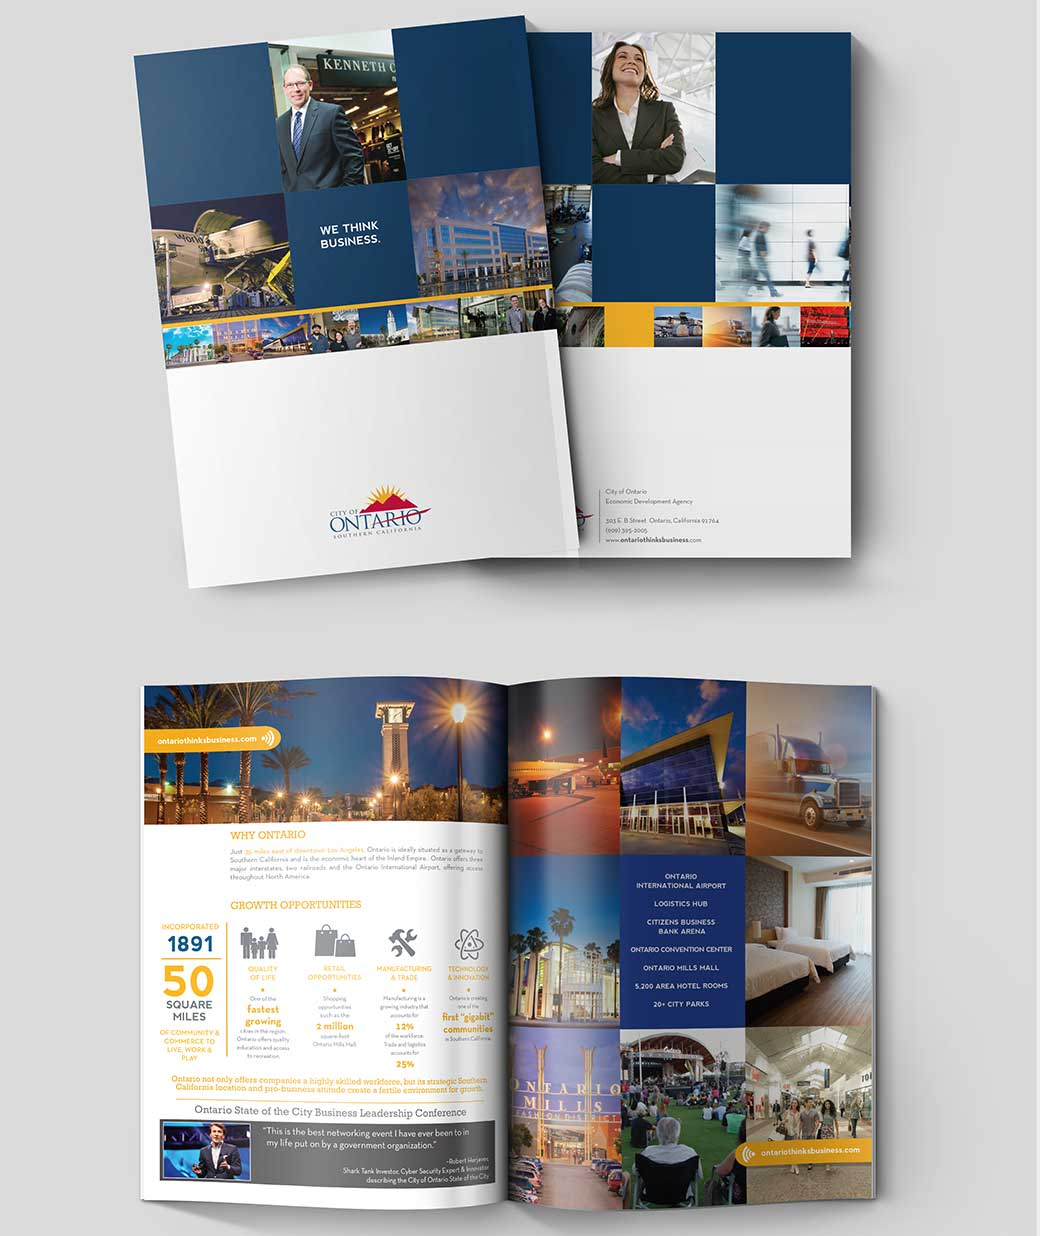 Ontario State of the City printed materials